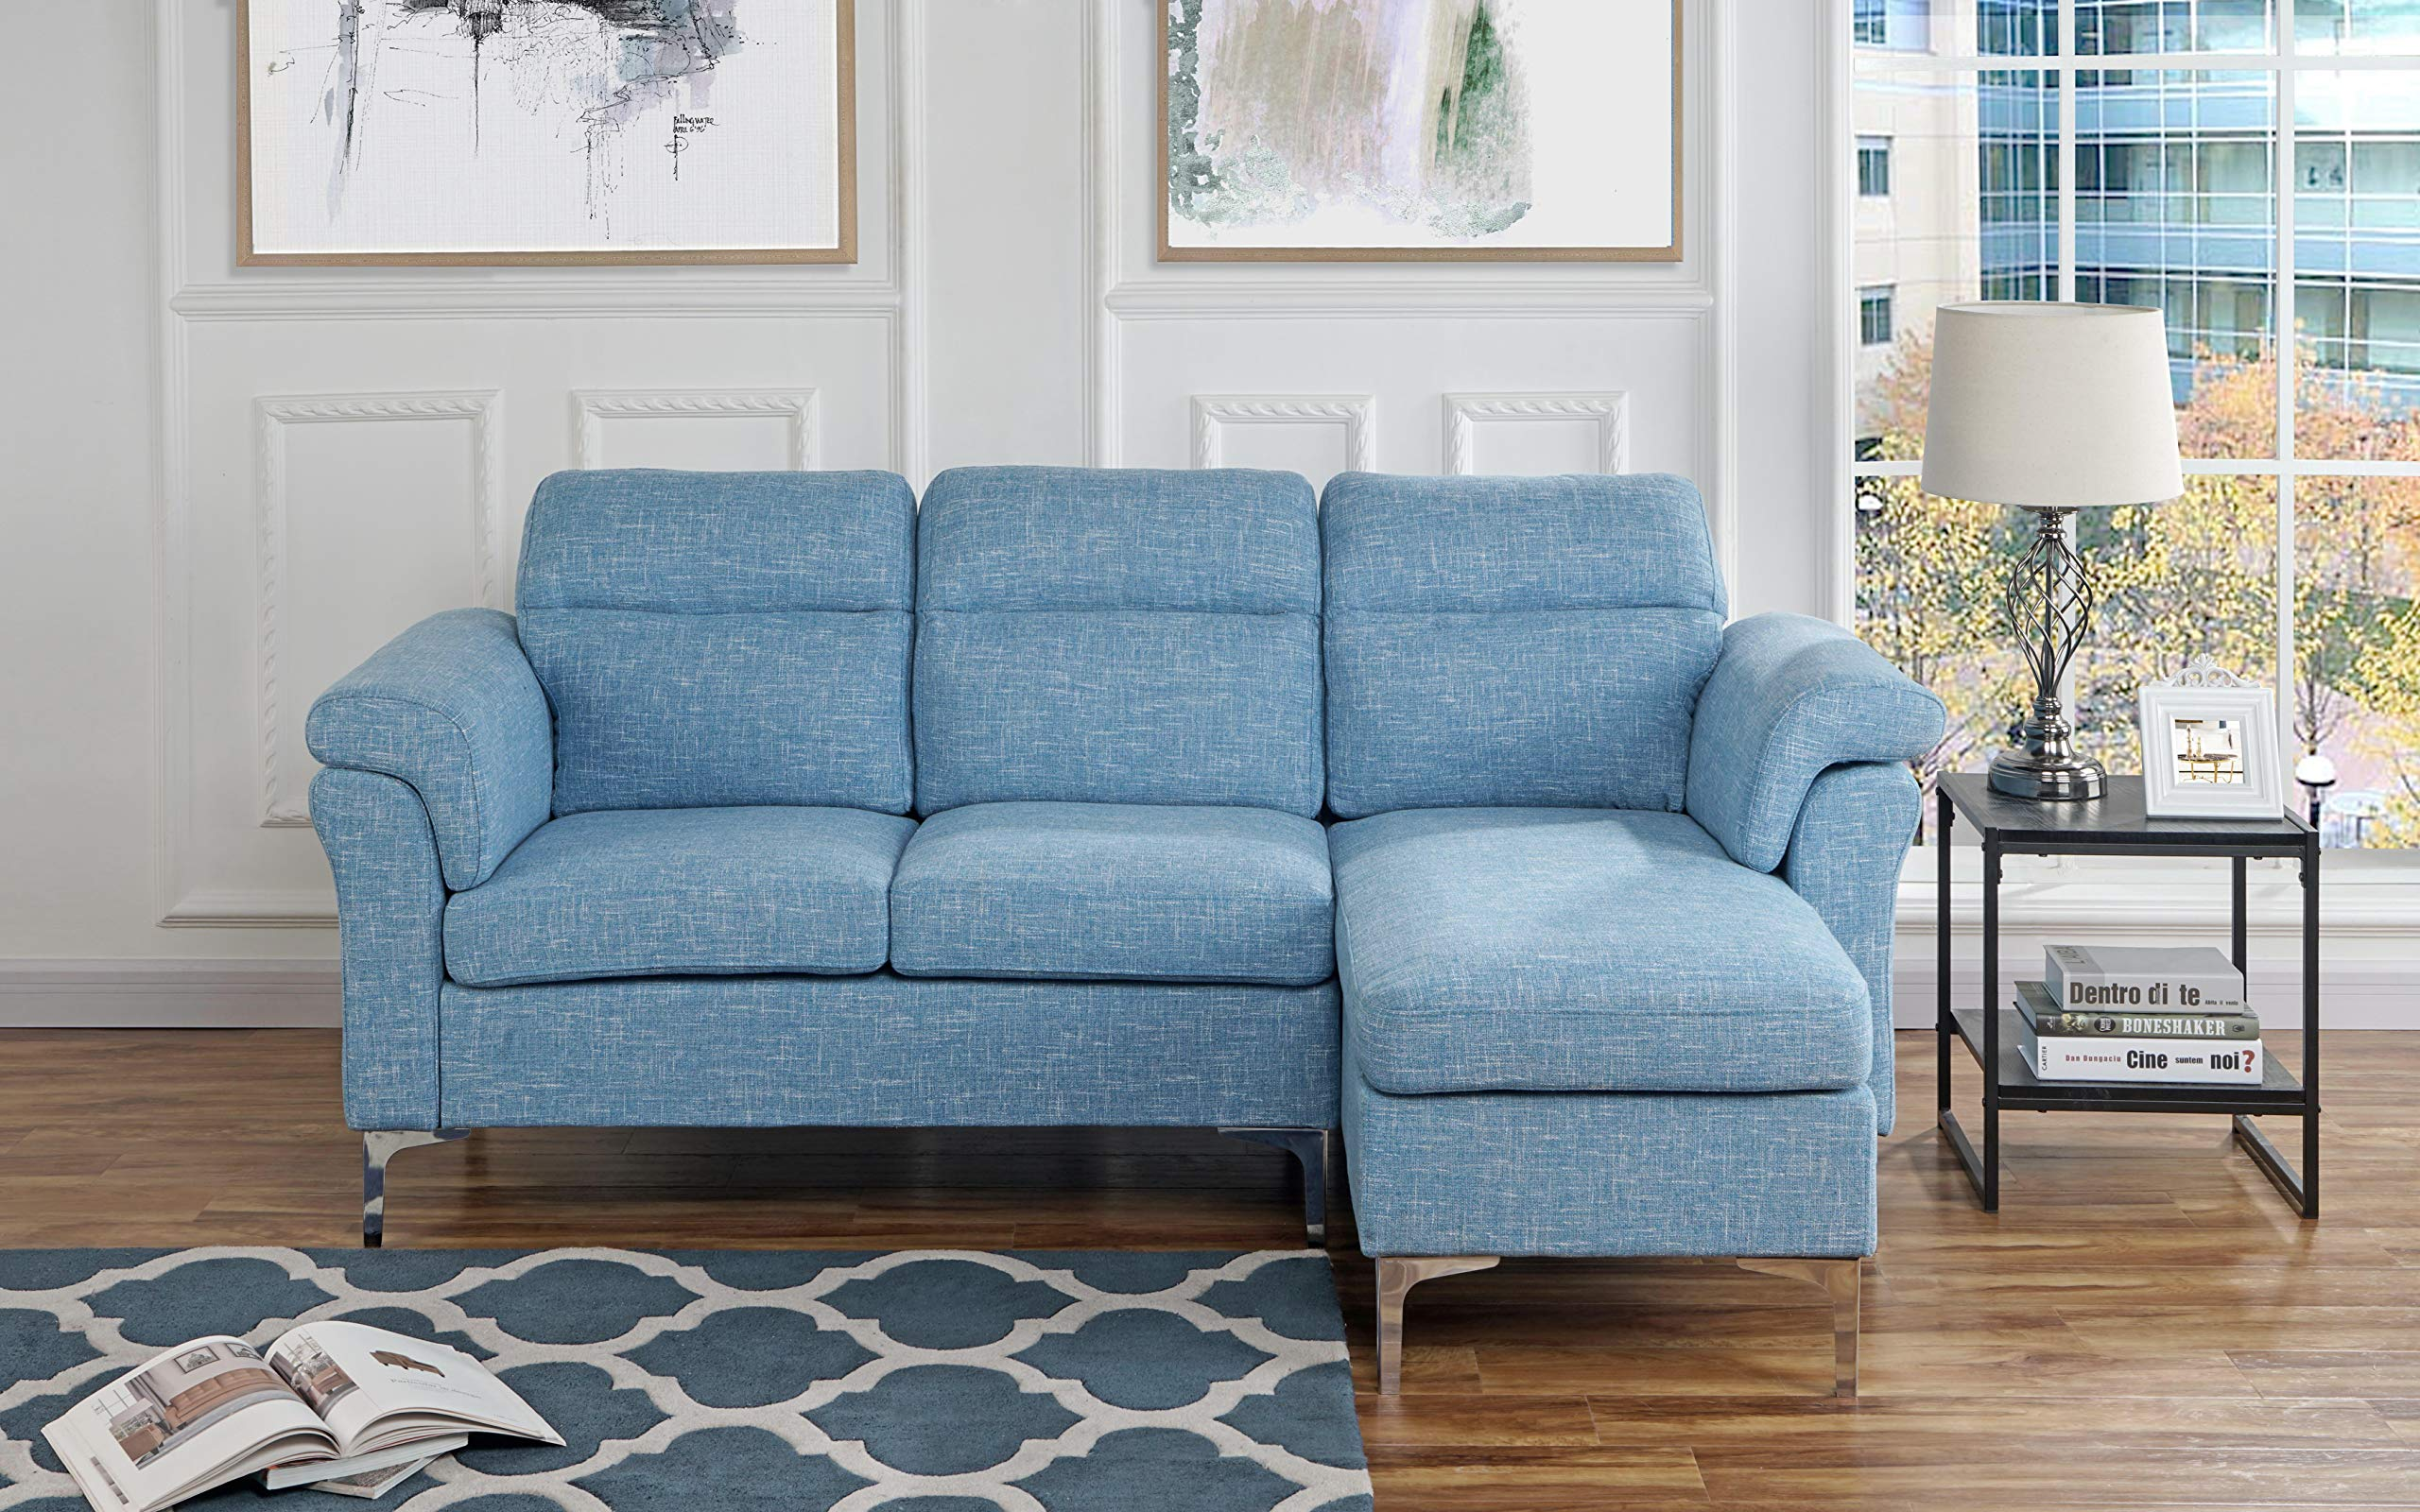 Casa Andrea Milano Modern Linen Fabric Sectional Sofa - Small Space Couch (Light Blue) - This small space sectional sofa features an exquisite modern design with wrap around armrest cushions for extra comfort. Our modern sectional sofa comes wrapped in carefully selected linen fabric upholstery. This modern sectional sofa has been specifically designed to fit into small spaces while still remaining spacious Our specially designed fabric provides the ultimate look while maintaining durability. - sofas-couches, living-room-furniture, living-room - 9173v7jedJL -